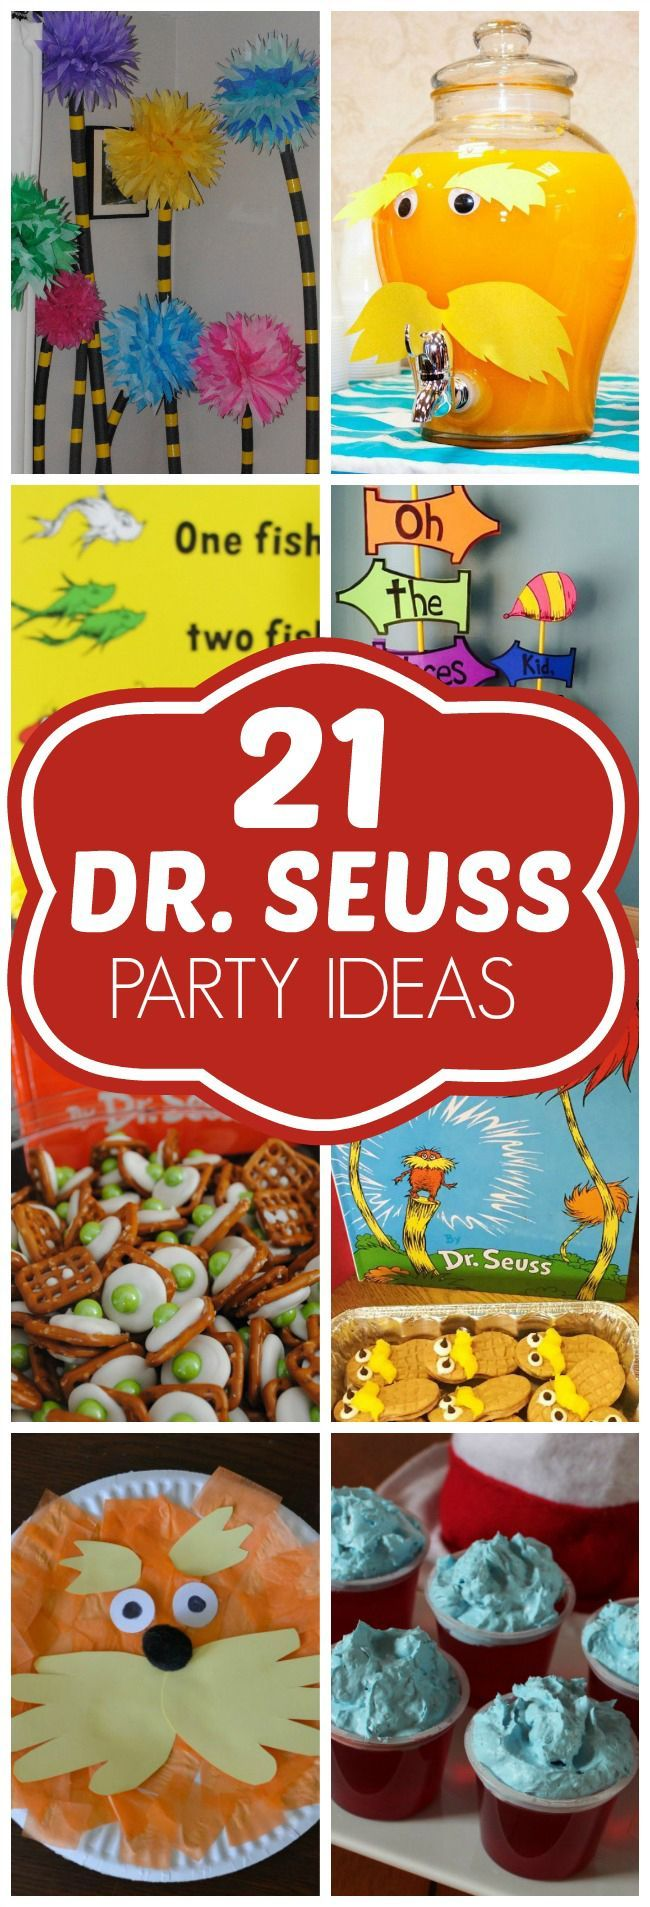 For the Dr. Seuss childhood stories we great up on! The Cat in the Hat Knows A Lot About That and Oh! The Places You'll Go!